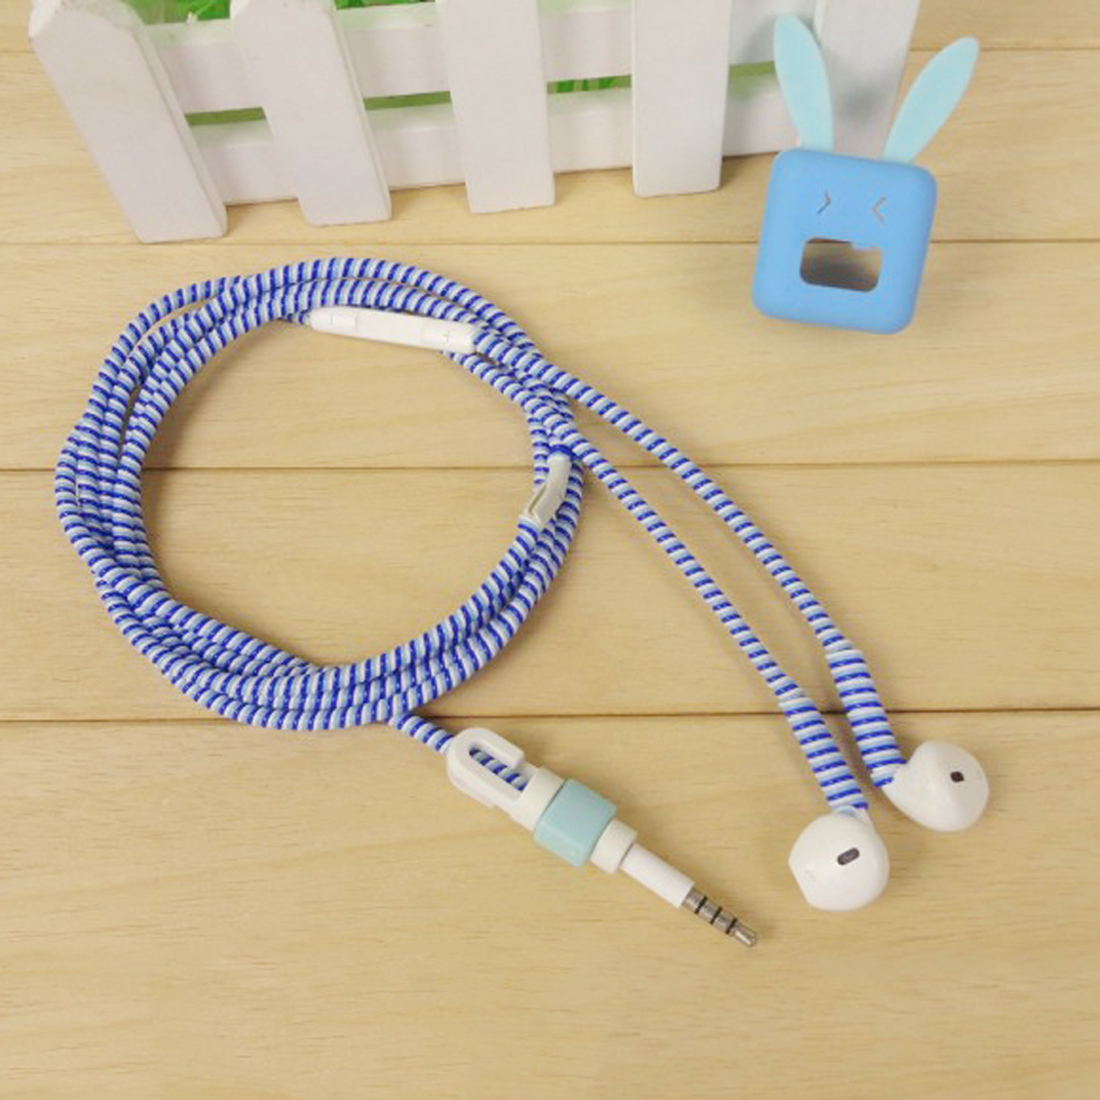 Clever 1.5m Mix Color Phone Wire Cord Rope Protector Usb Charging Cable Bobbin Winder Data Line Earphone Cover Suit Spring Sleeve Twine Consumer Electronics Digital Cables